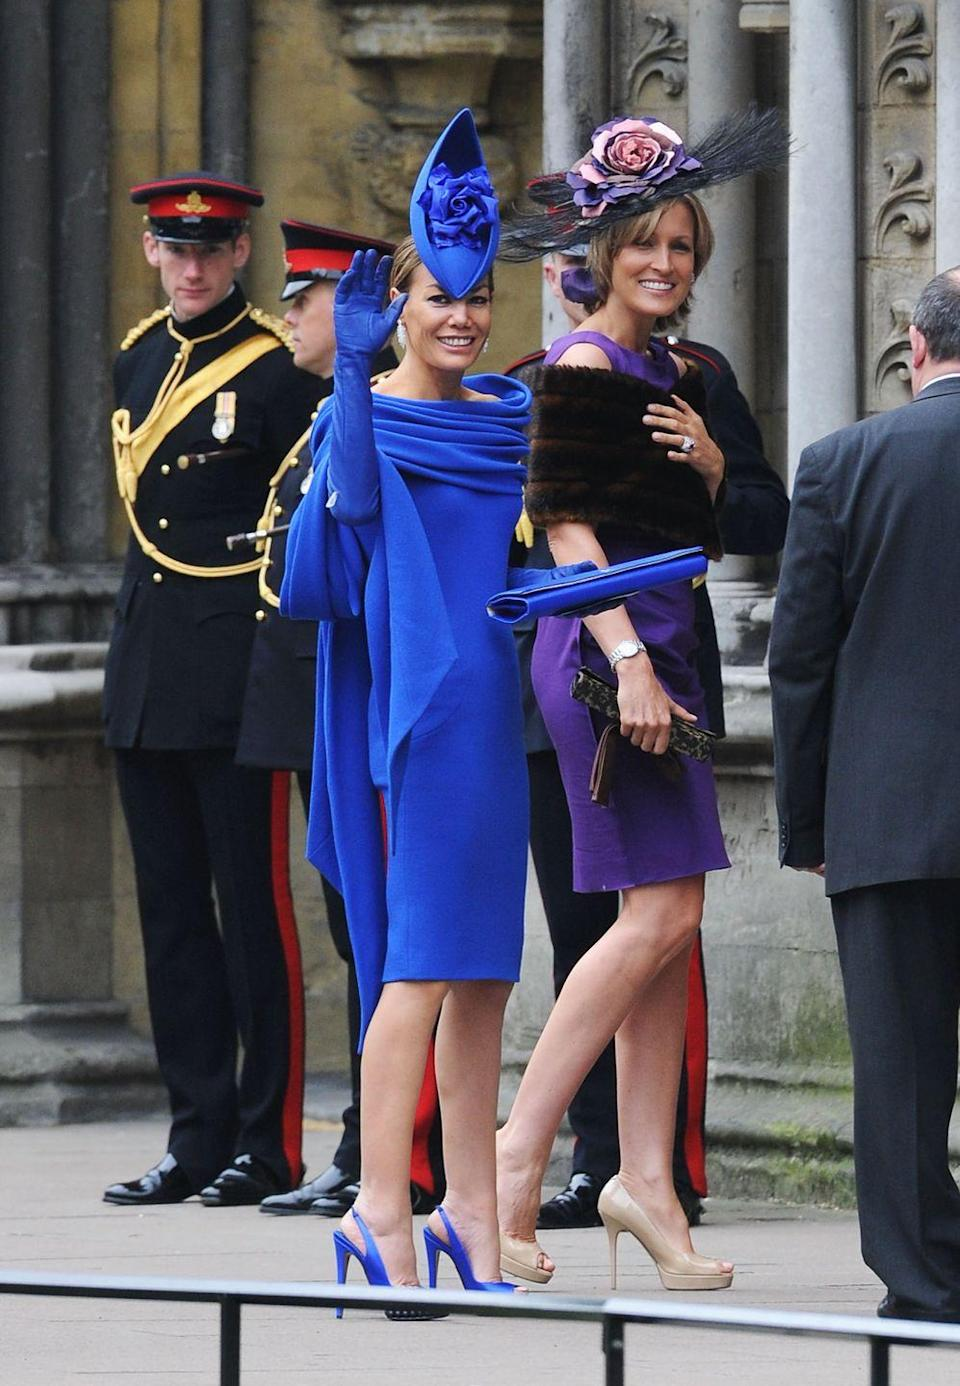 <p>Tara Palmer-Tomkinson arrives at Will and Kate's nuptials in a bold blue outfit complete with boat-shaped fascinator and elbow-length gloves.</p>